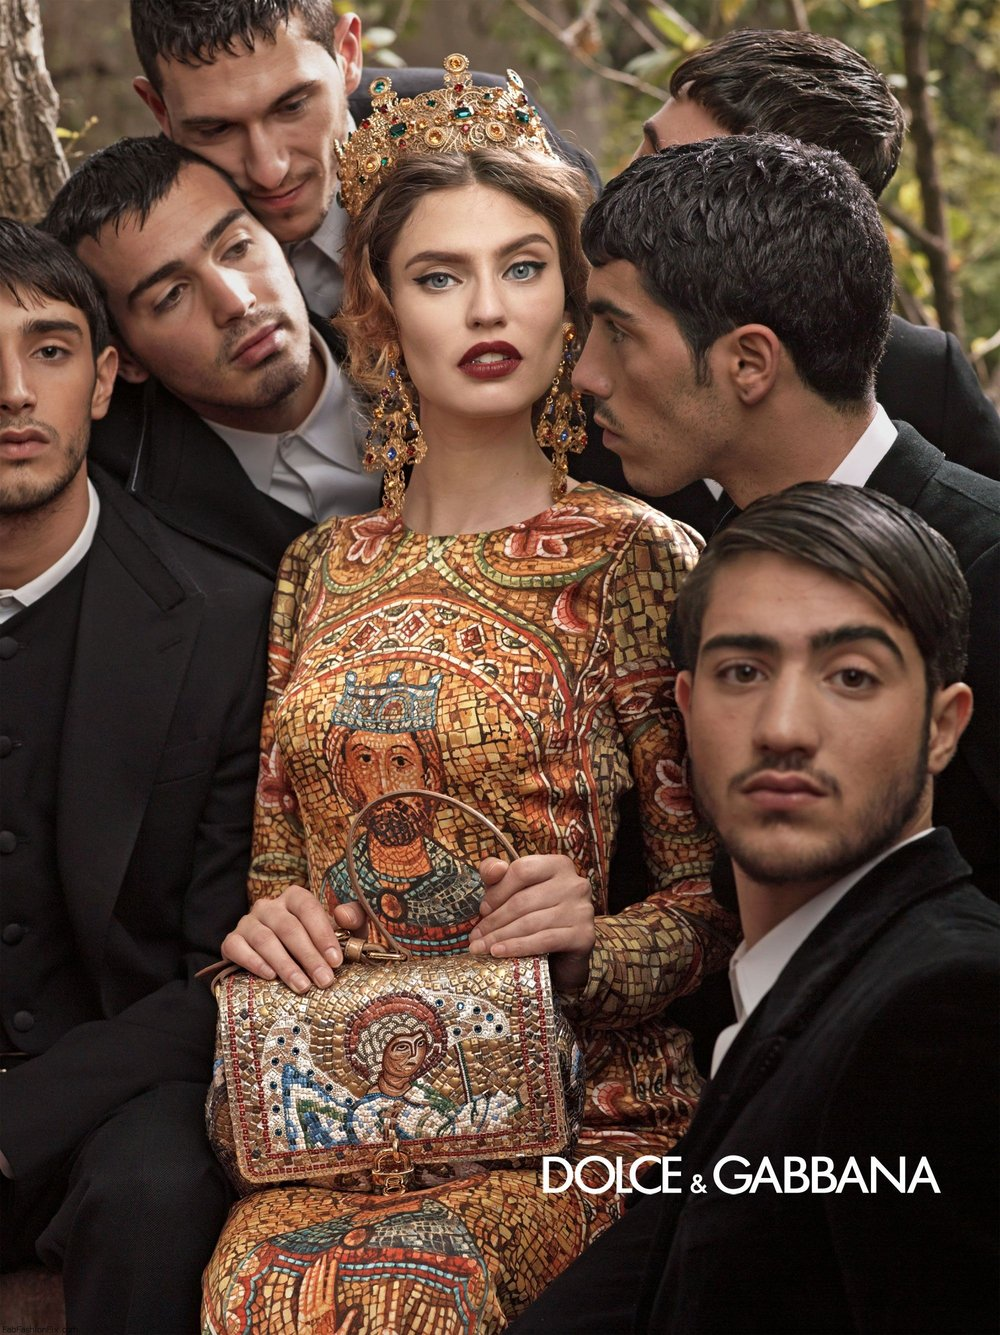 dolce-and-gabbana-fw-2014-women-adv-campaign-9.jpg